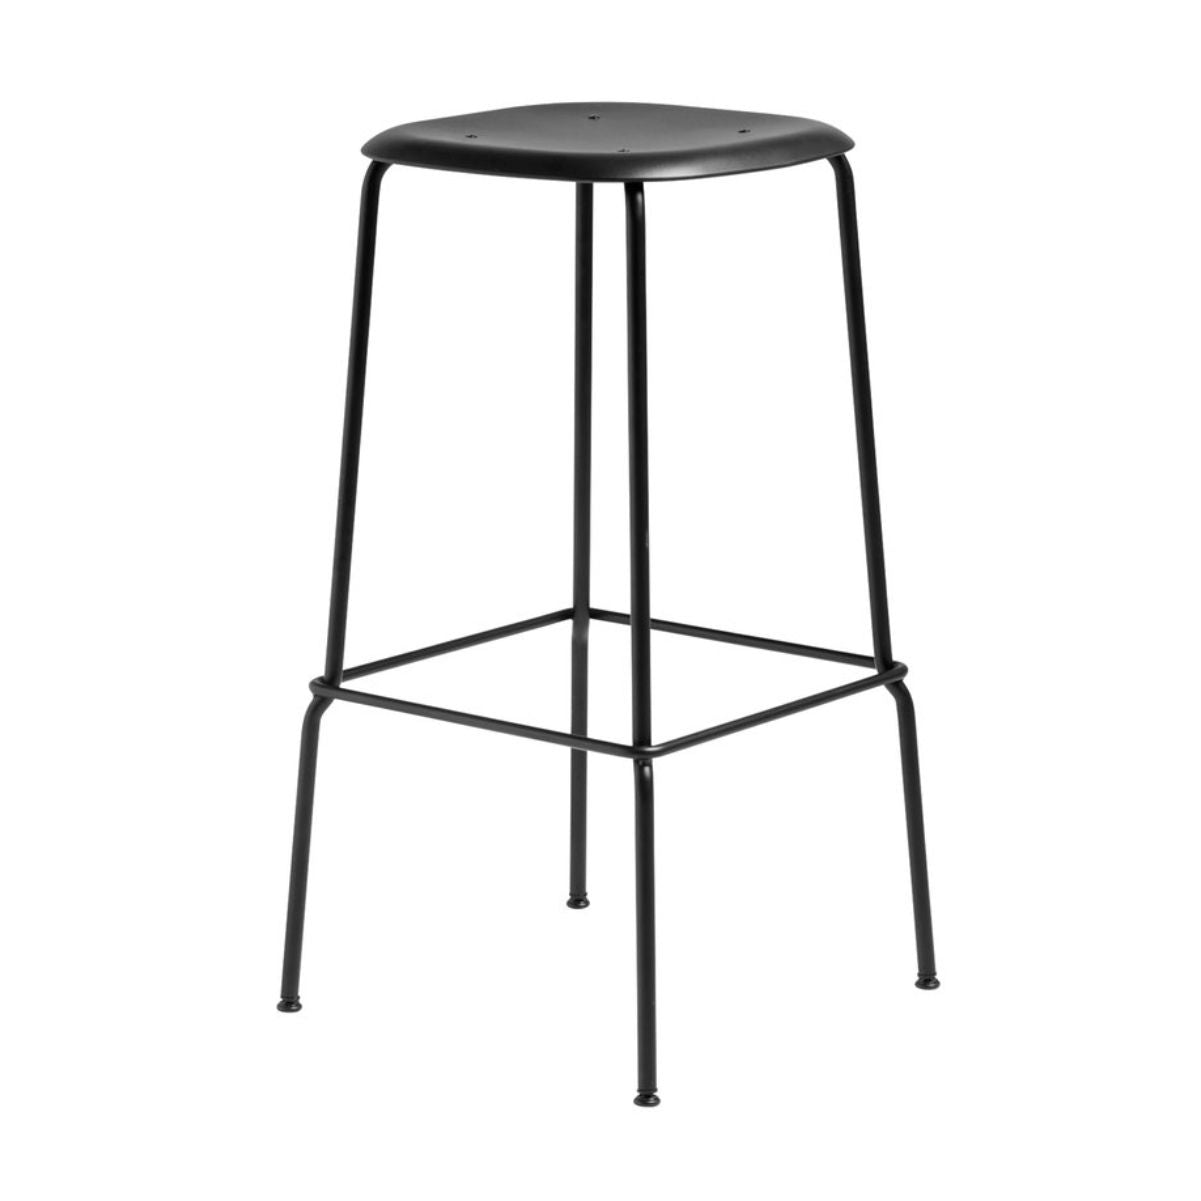 Hay Soft Edge P30 bar stool, black